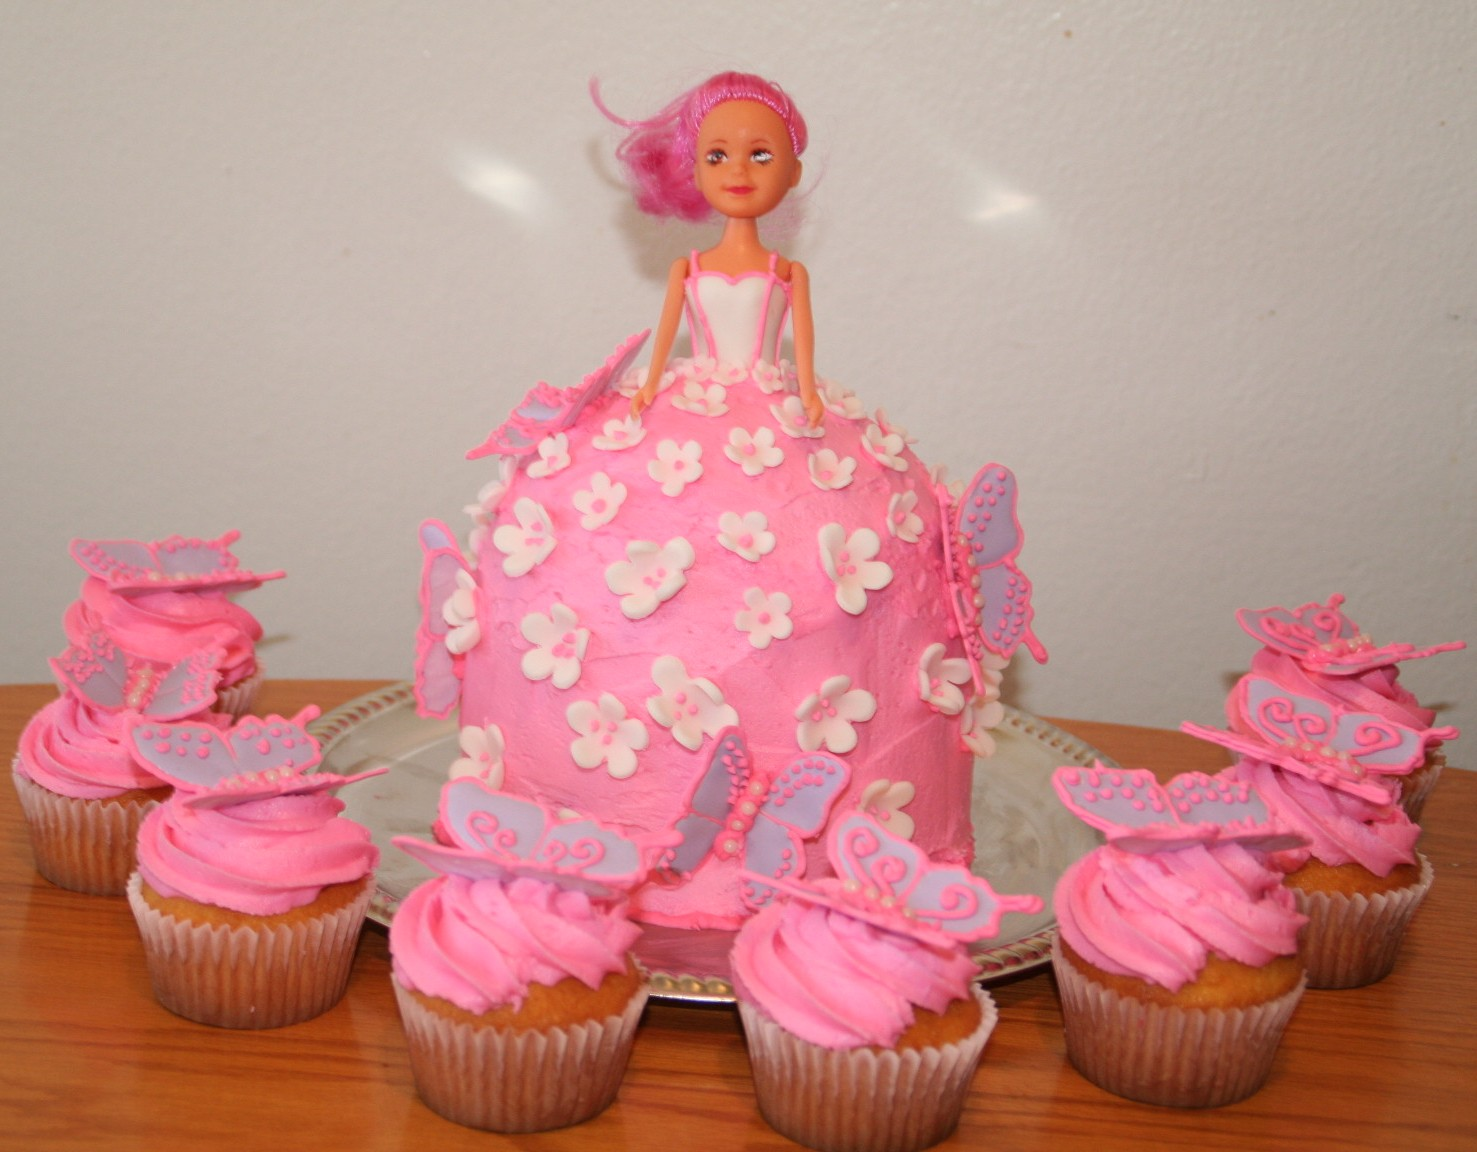 Doll Cake Images With Name : Sar.N.Dipity Creations: Doll Cake & Butterfly Cupcakes